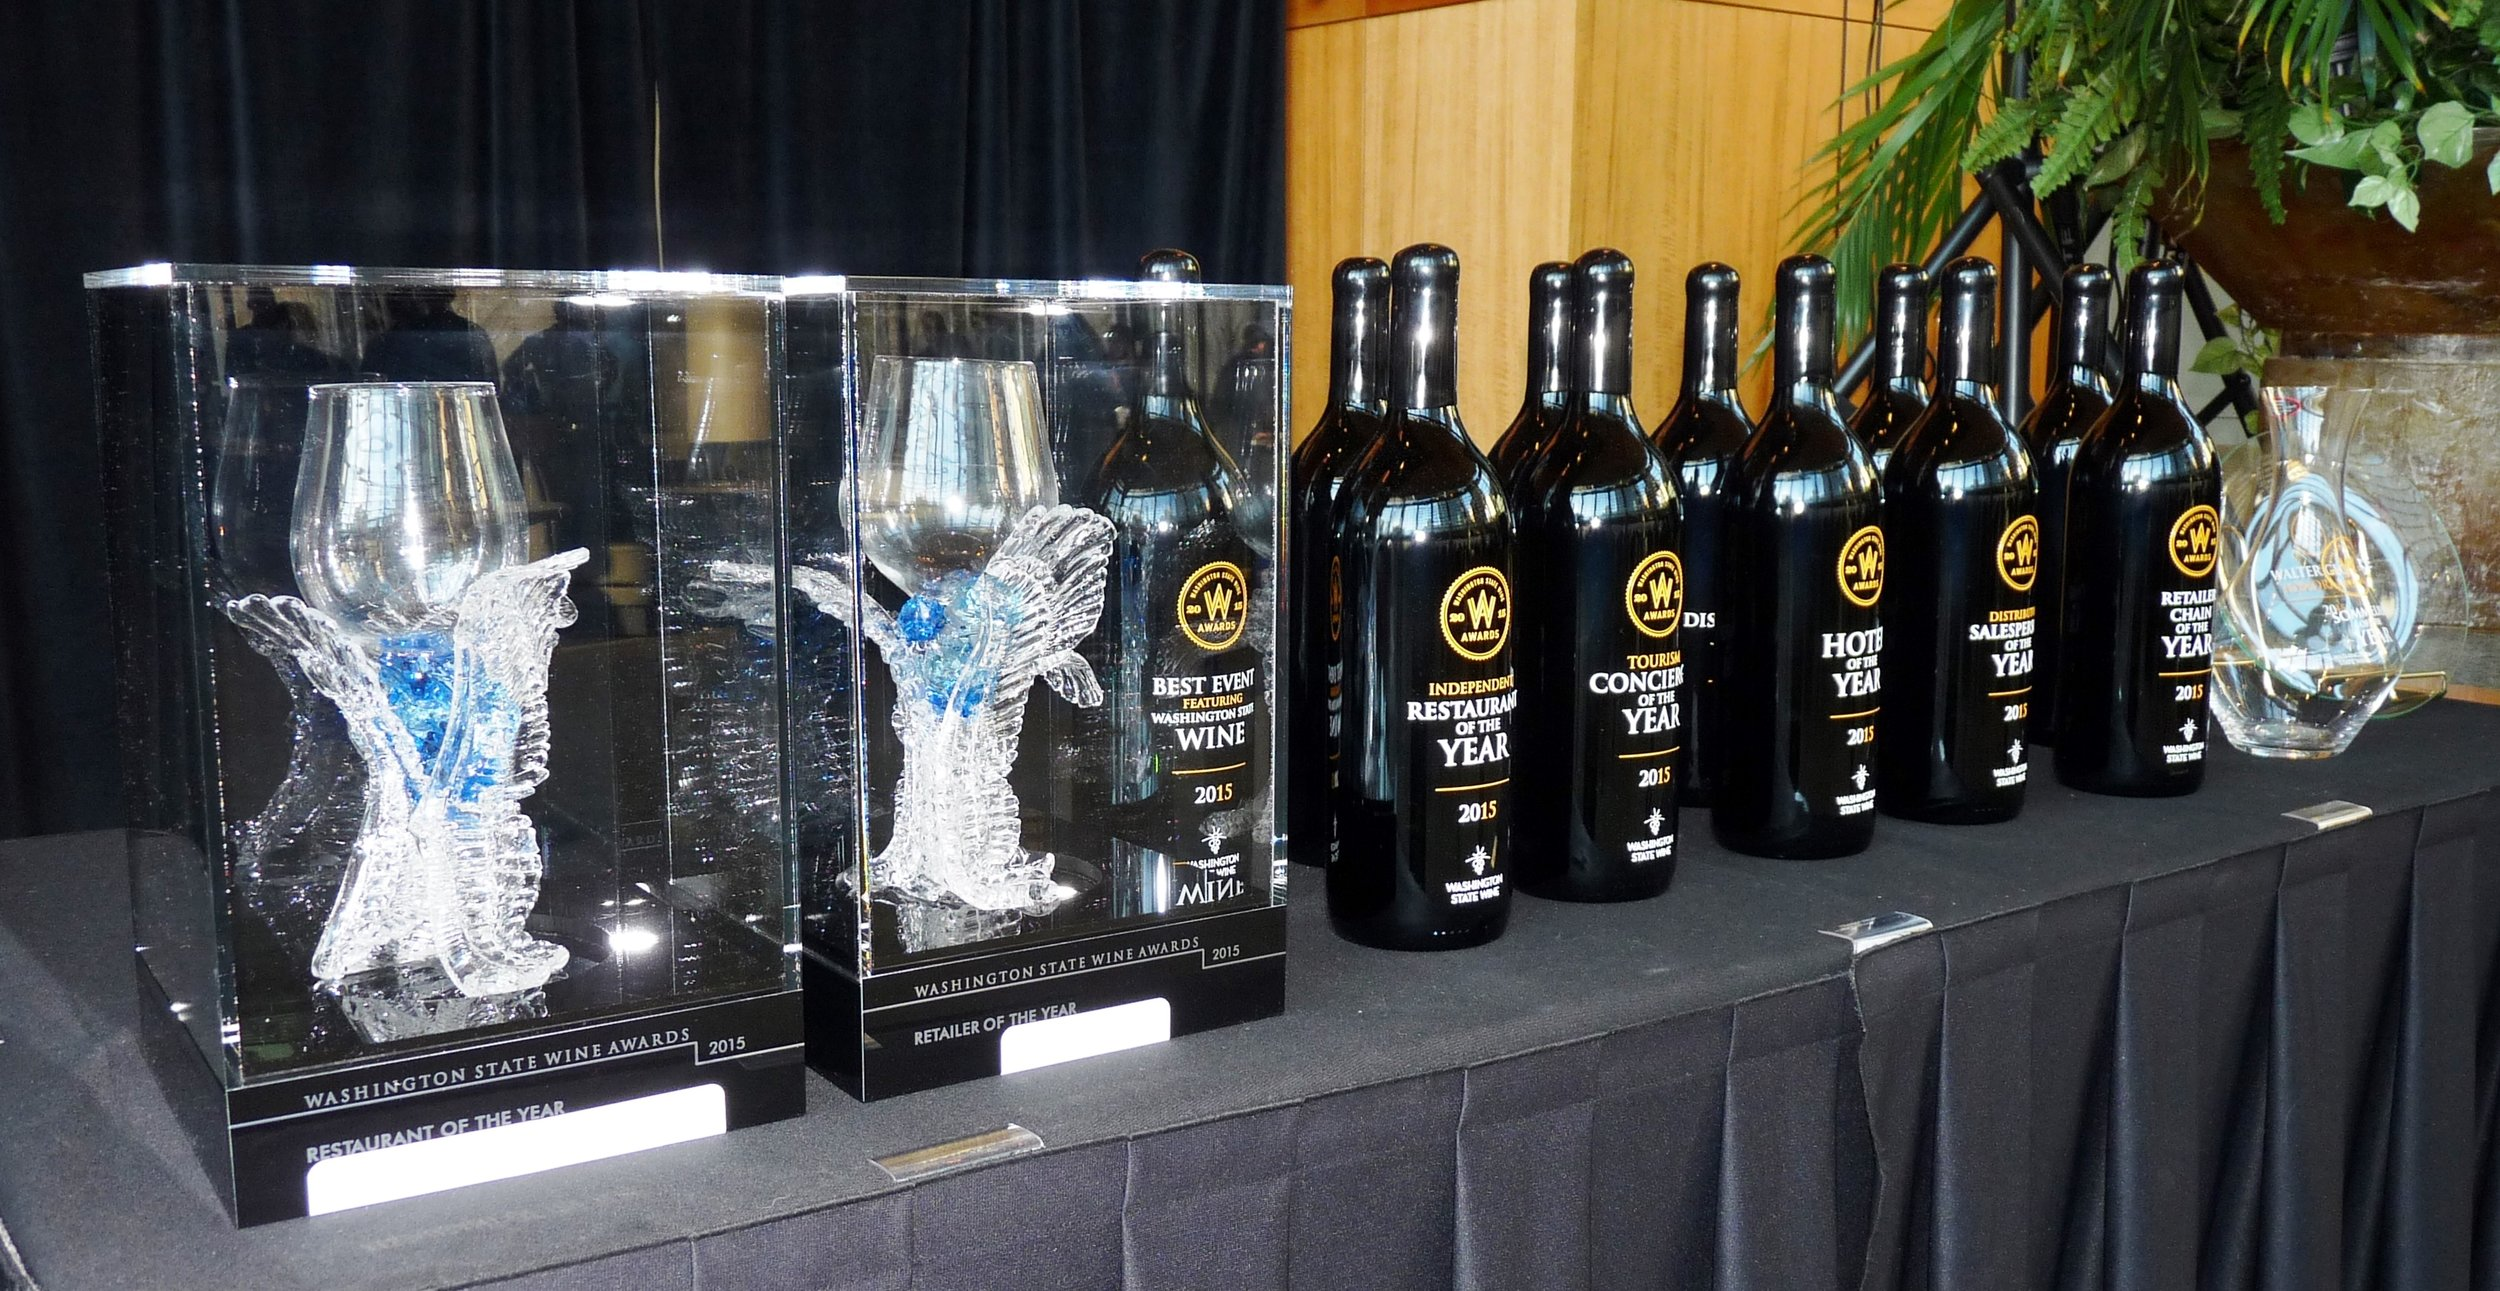 And the winner is...The 13th annual Washington State Wine Awards, held at Benaroya Hall in Seattle, focuses on restaurants, retail distributors and tourism.